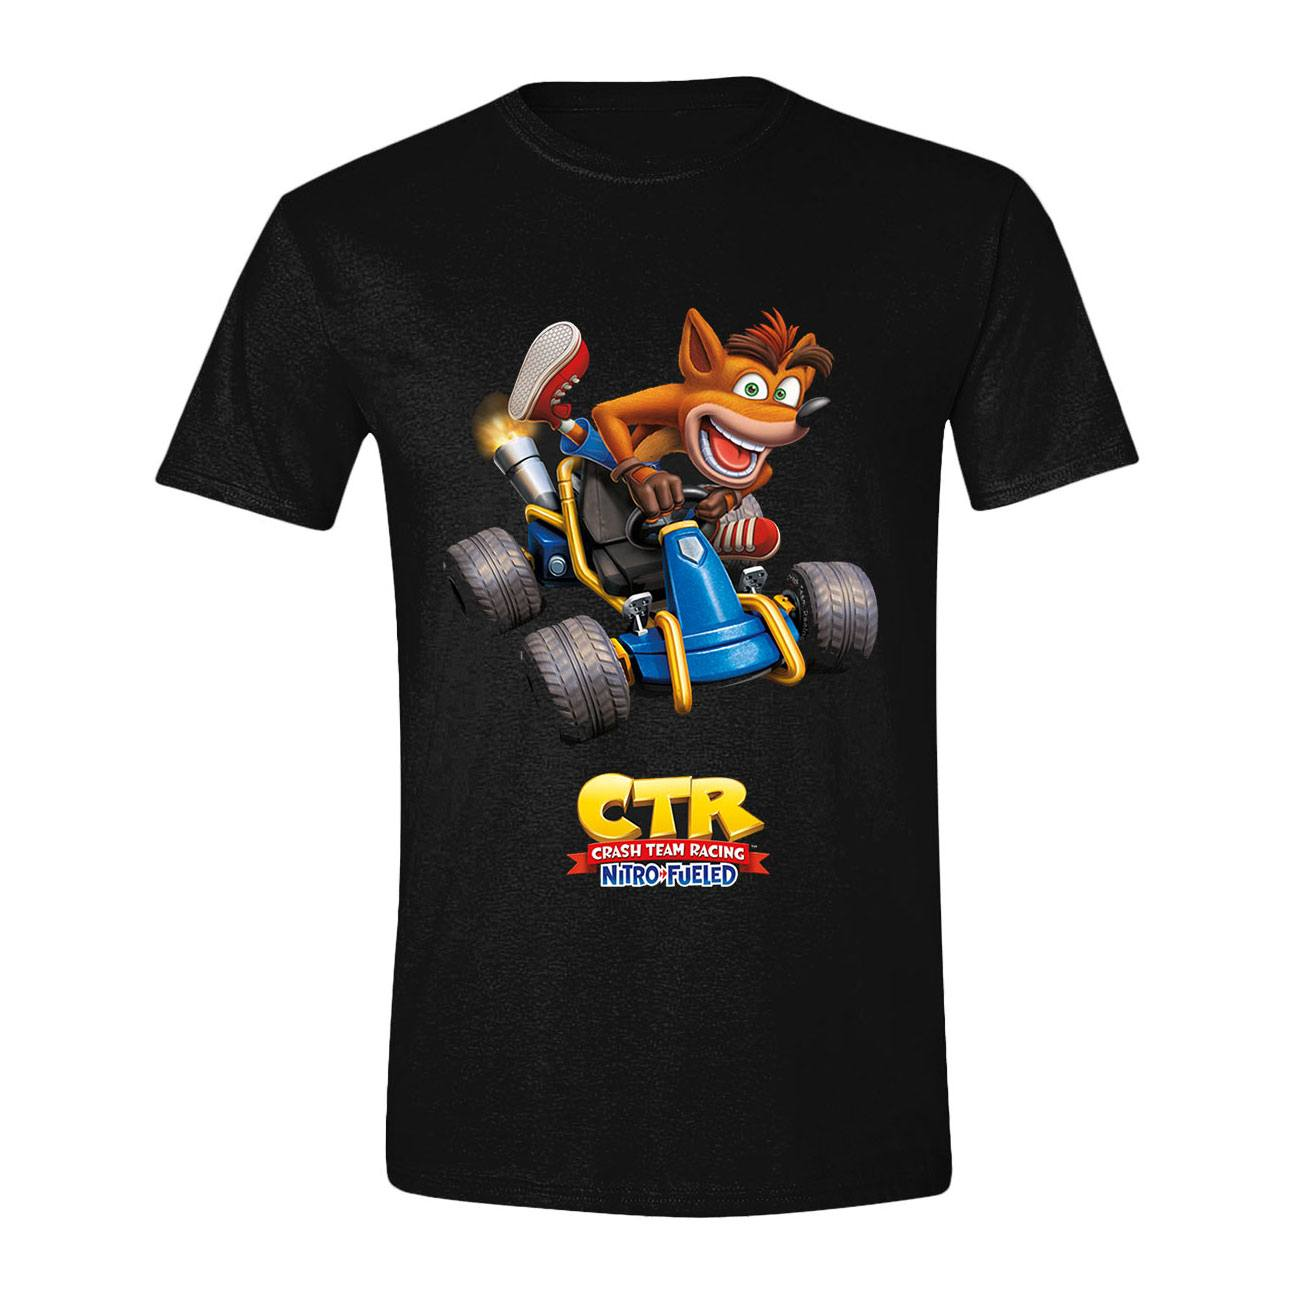 Crash Team Racing T-Shirt Crash Car (XL)